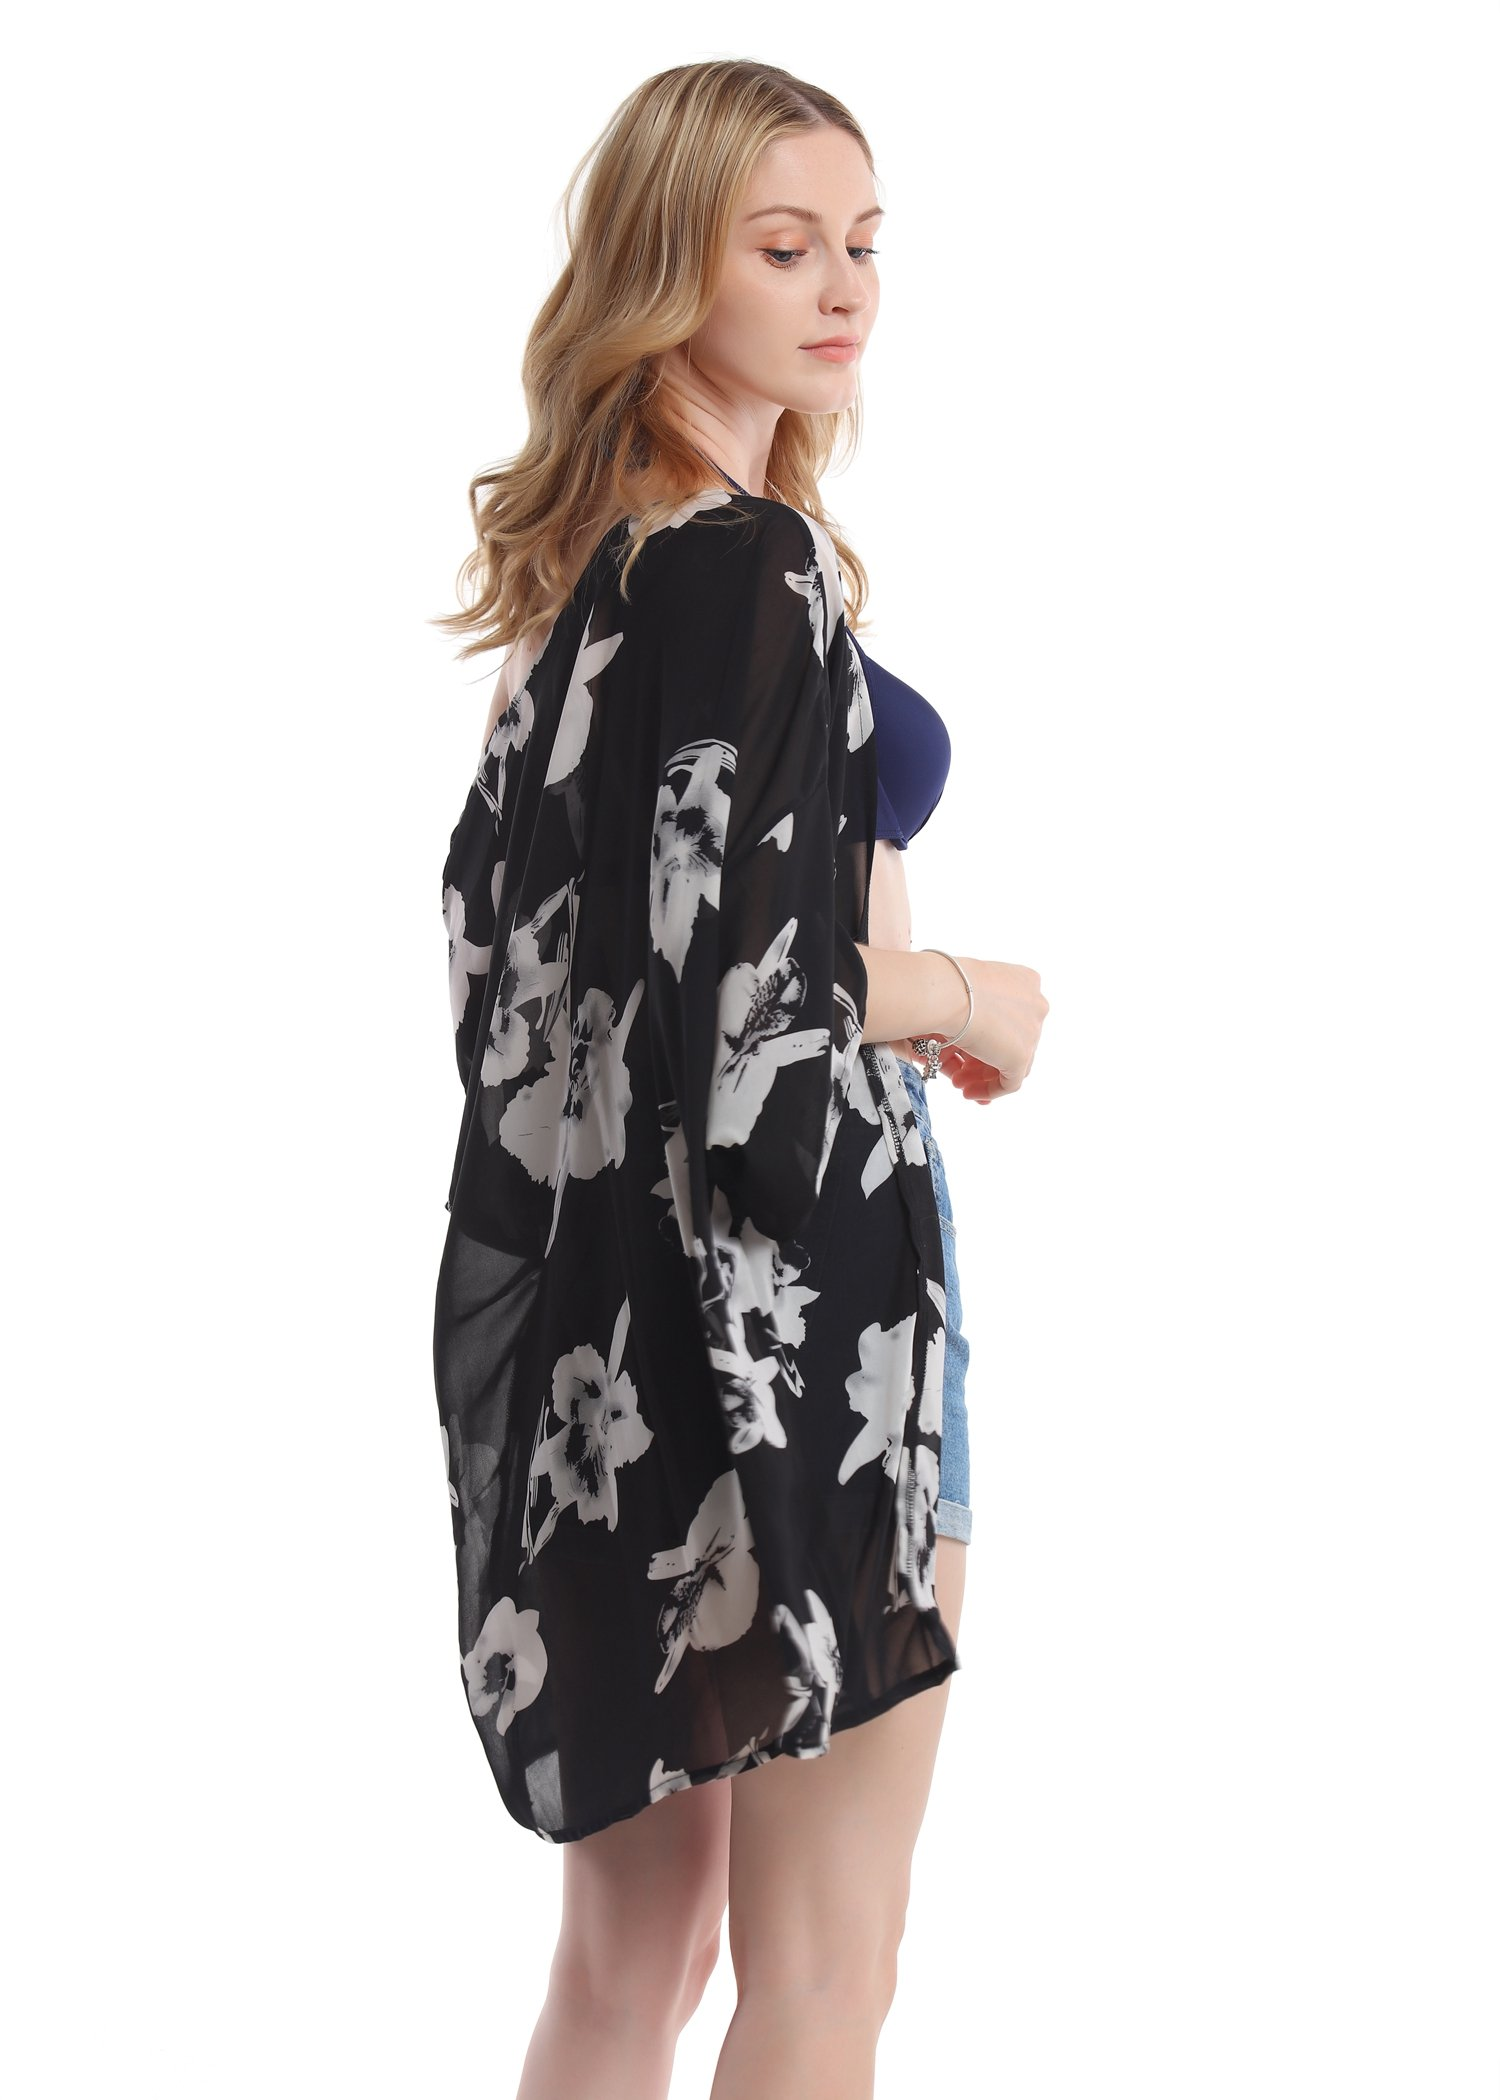 Women's Floral Chiffon Kimono Top - Ladies Sheer Flower 3/4 Sleeves Beach Cover Up for Bikini,Beachwear and Cardigan(Black&White,XL) by soul young (Image #3)